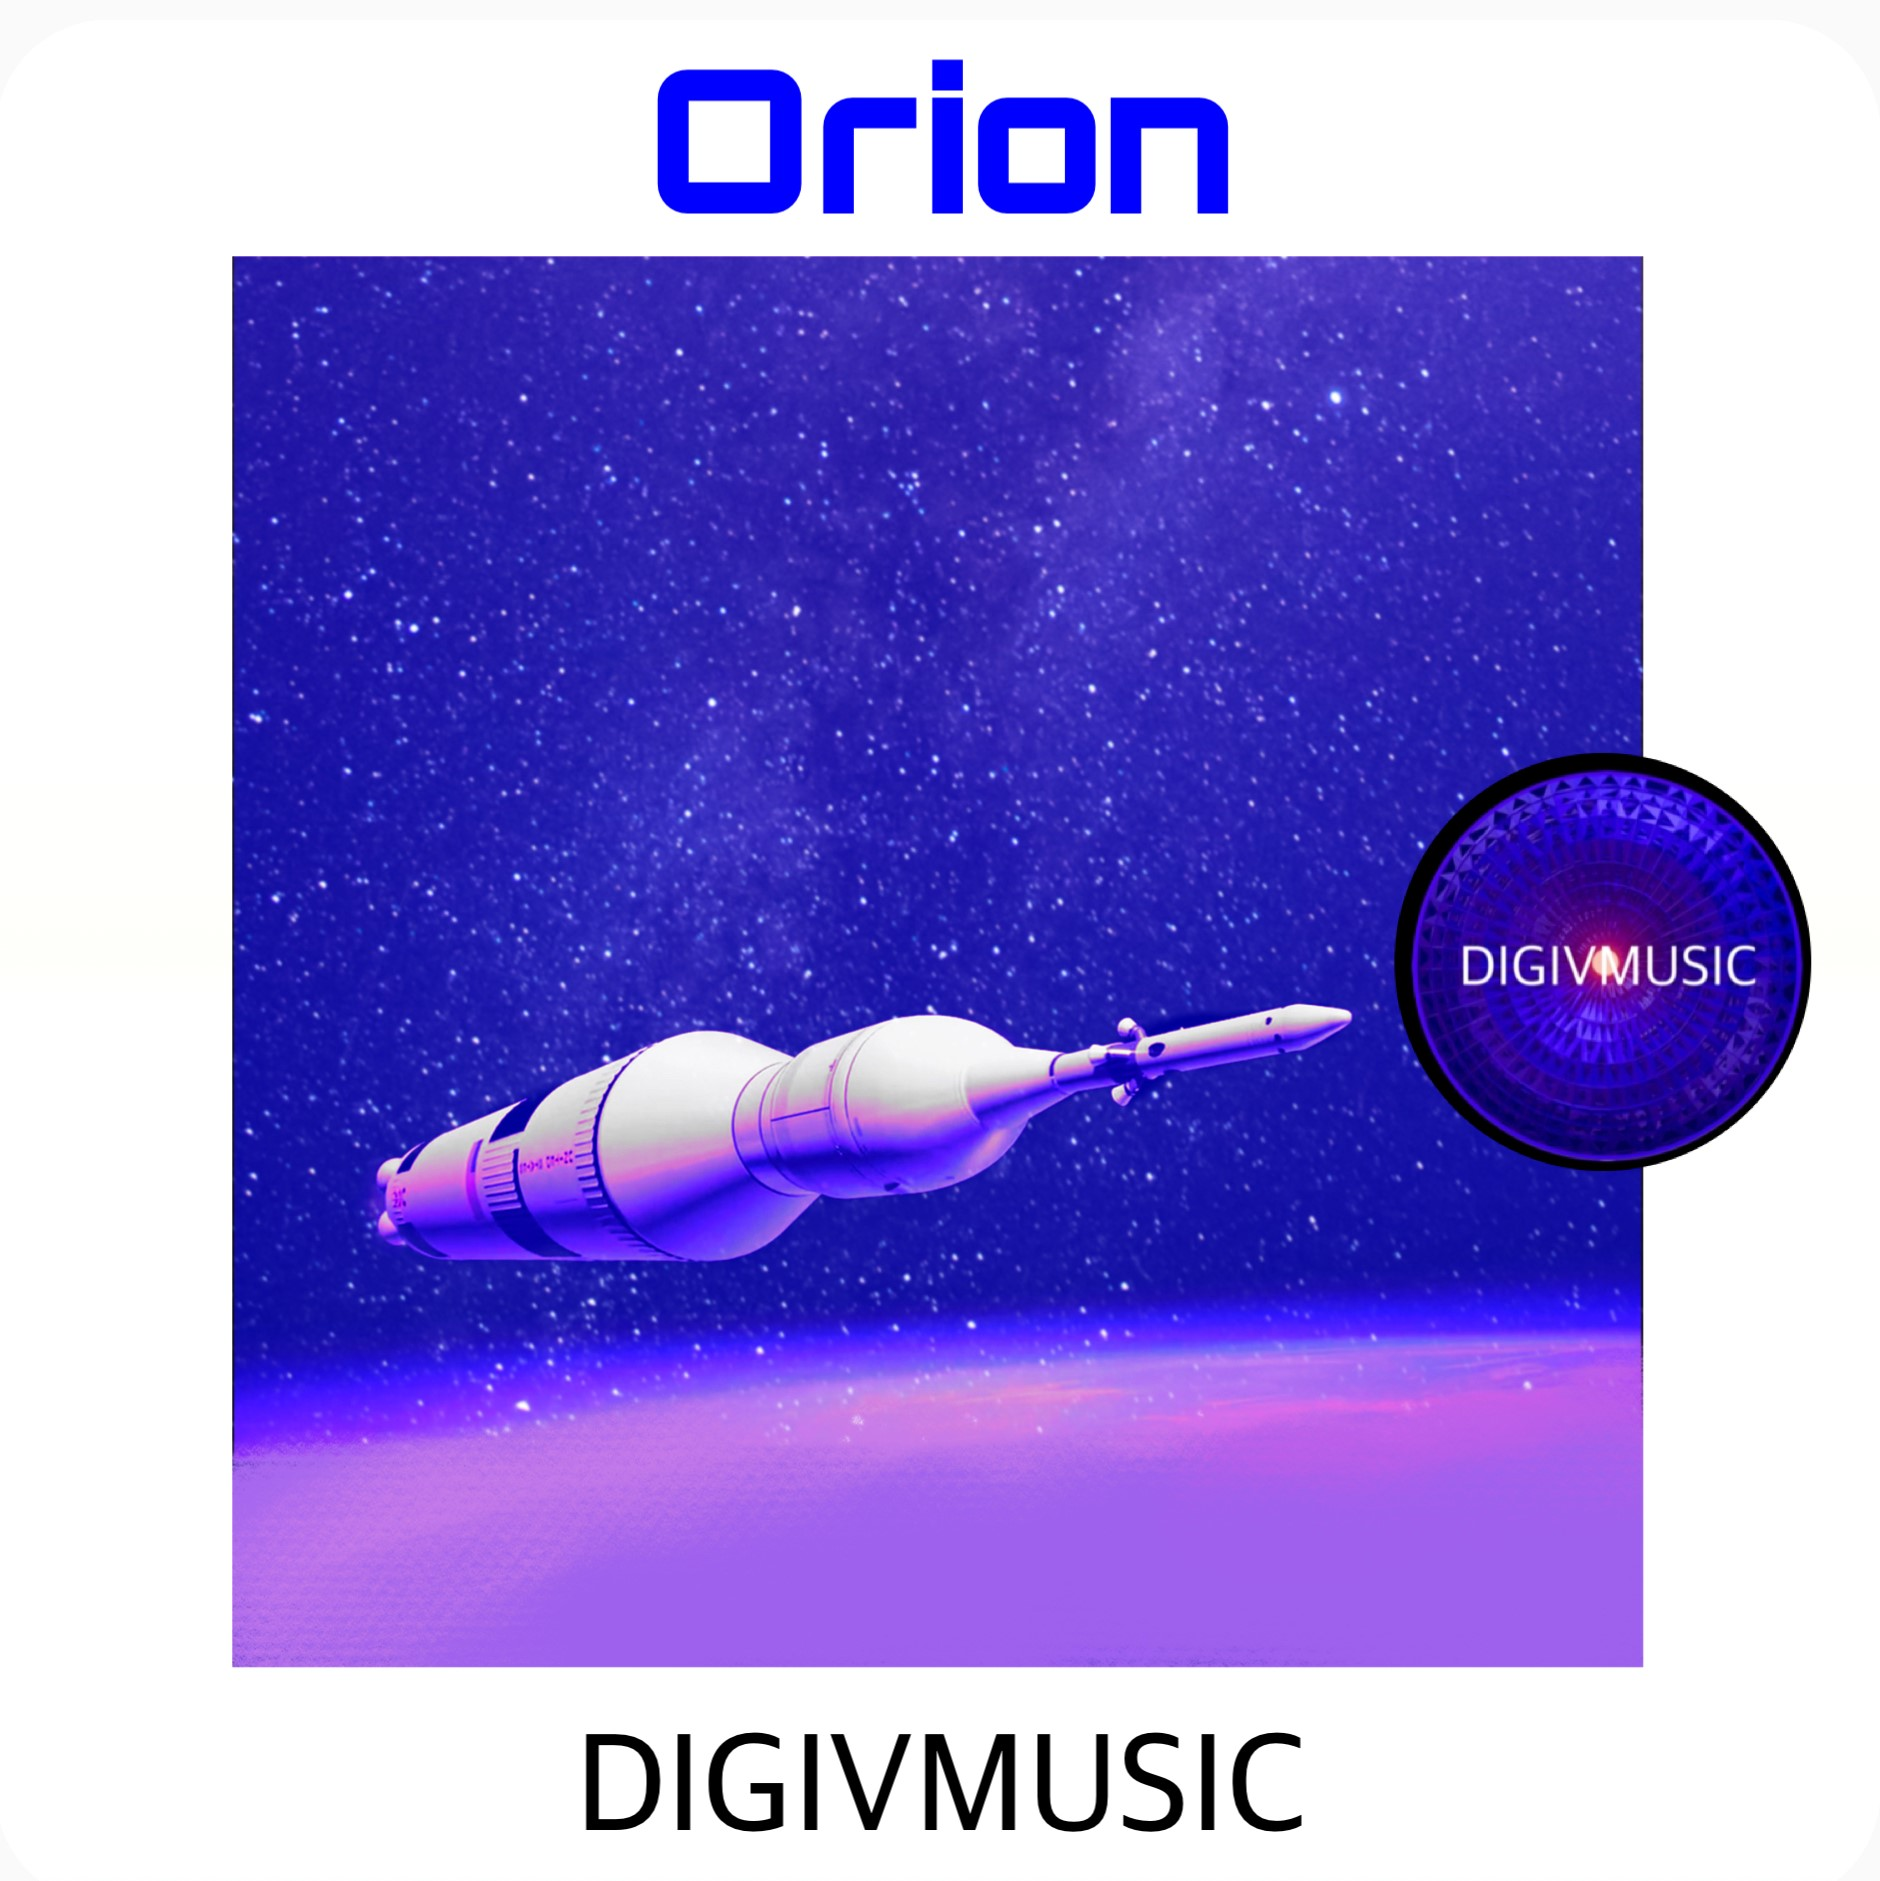 Music track Orion by DIGIVMUSIC